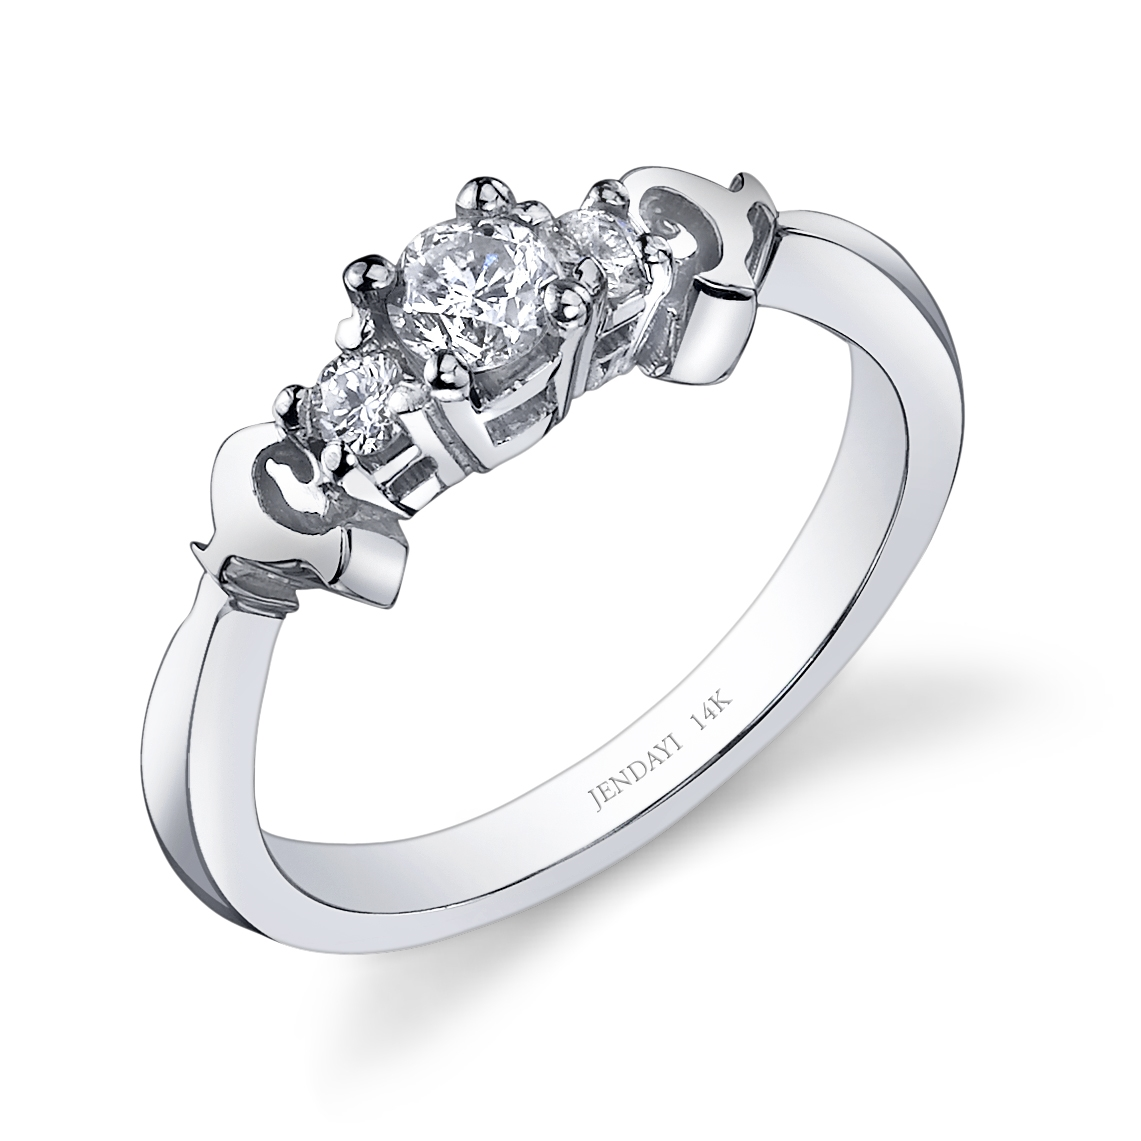 platinium rings my first engagement aura promise bridal diamond solitaire mfd beers de jewellery ring